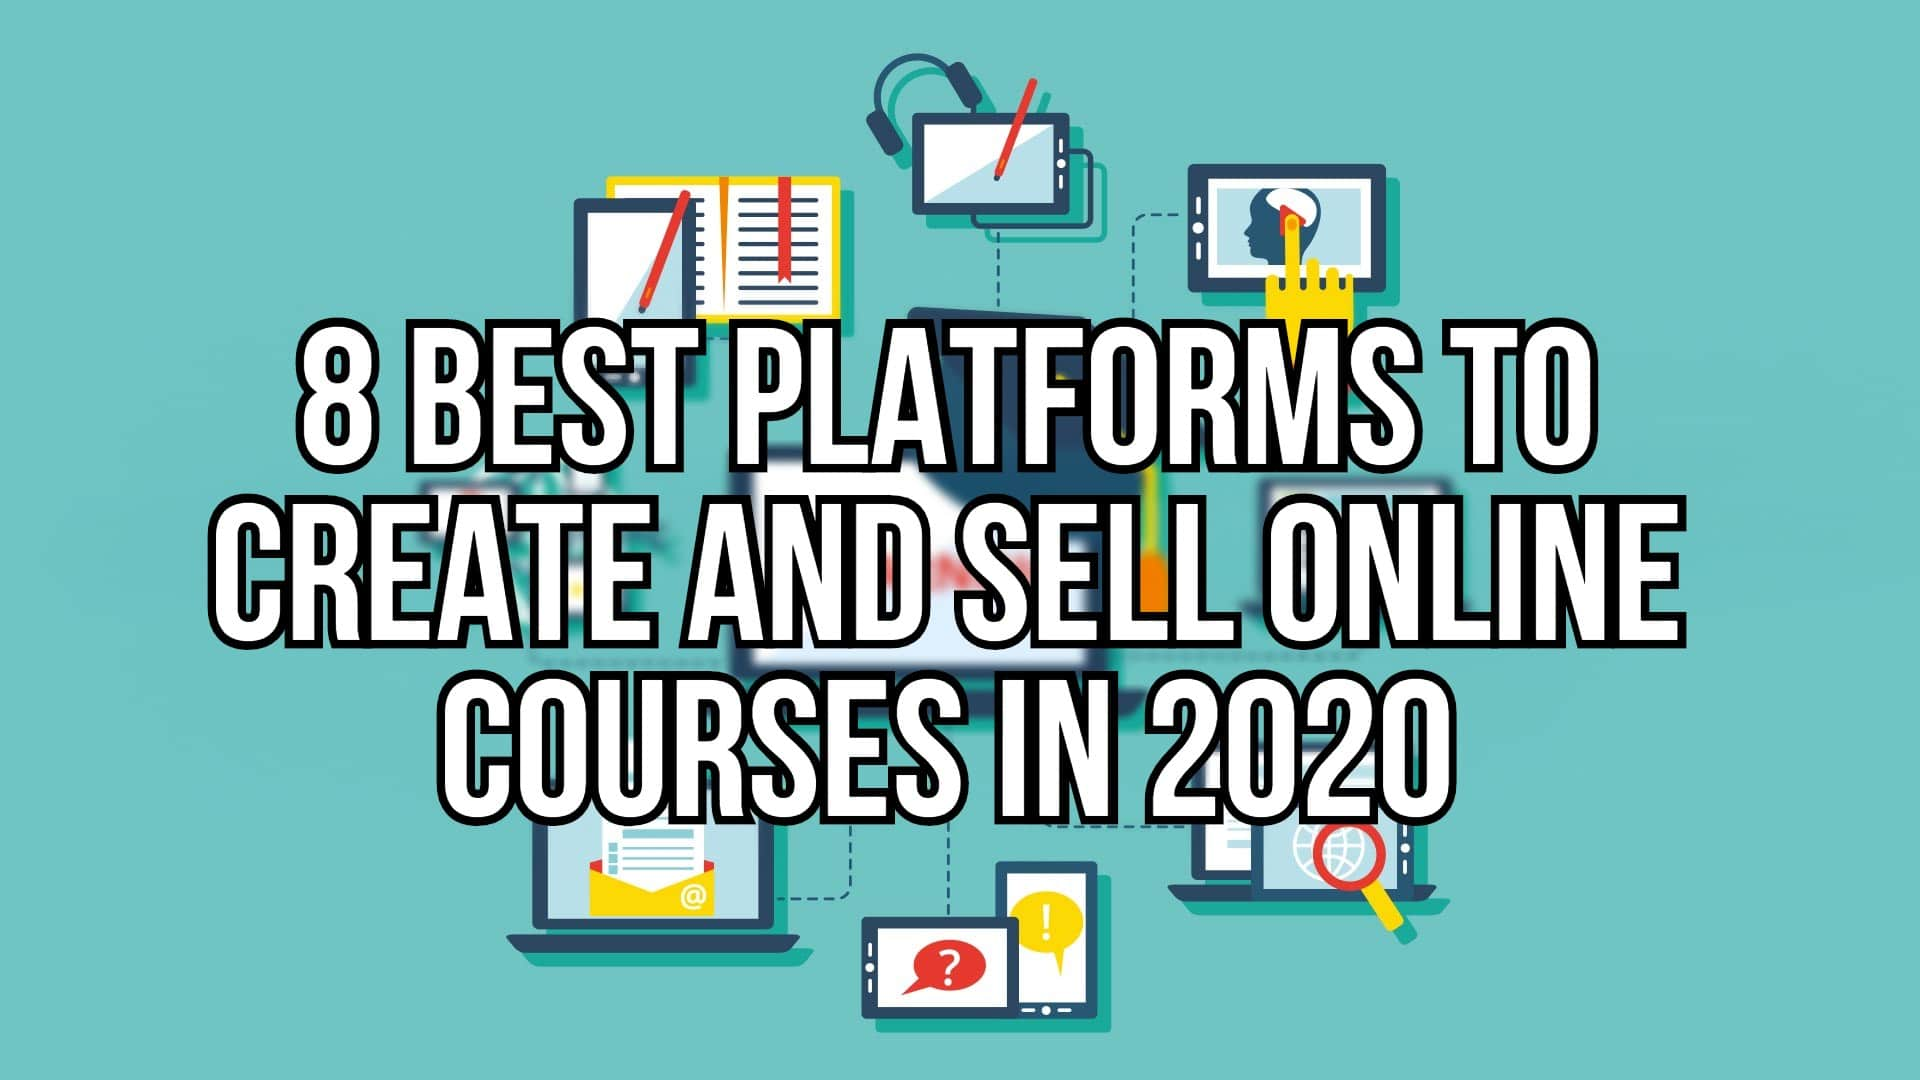 Platforms to create and sell online courses in 2020